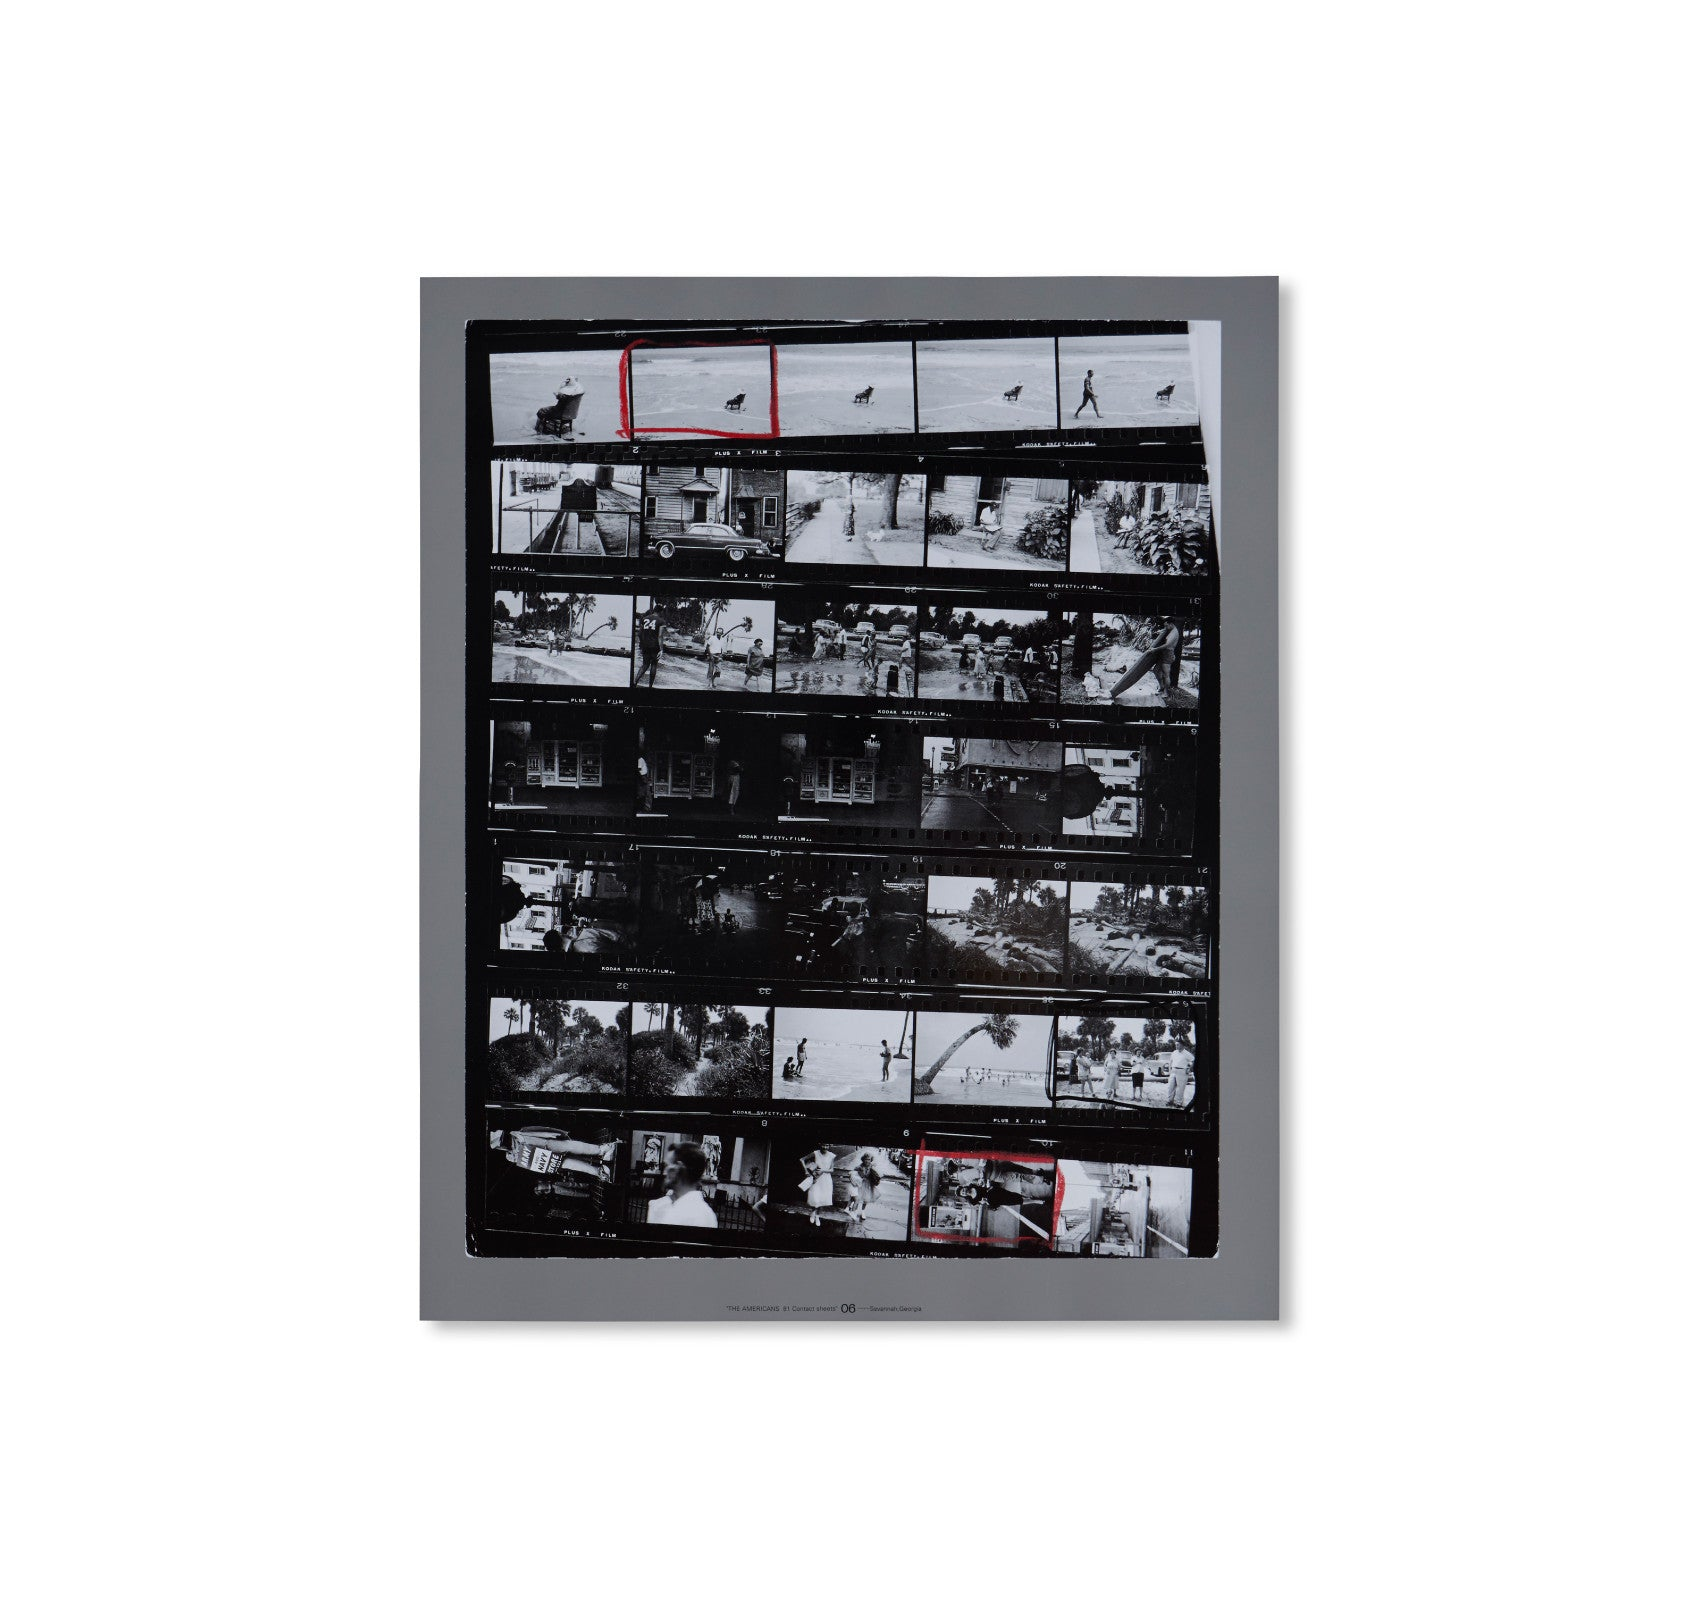 THE AMERICANS, 81 CONTACT SHEETS (FOLDING BOARD BOX) by Robert Frank